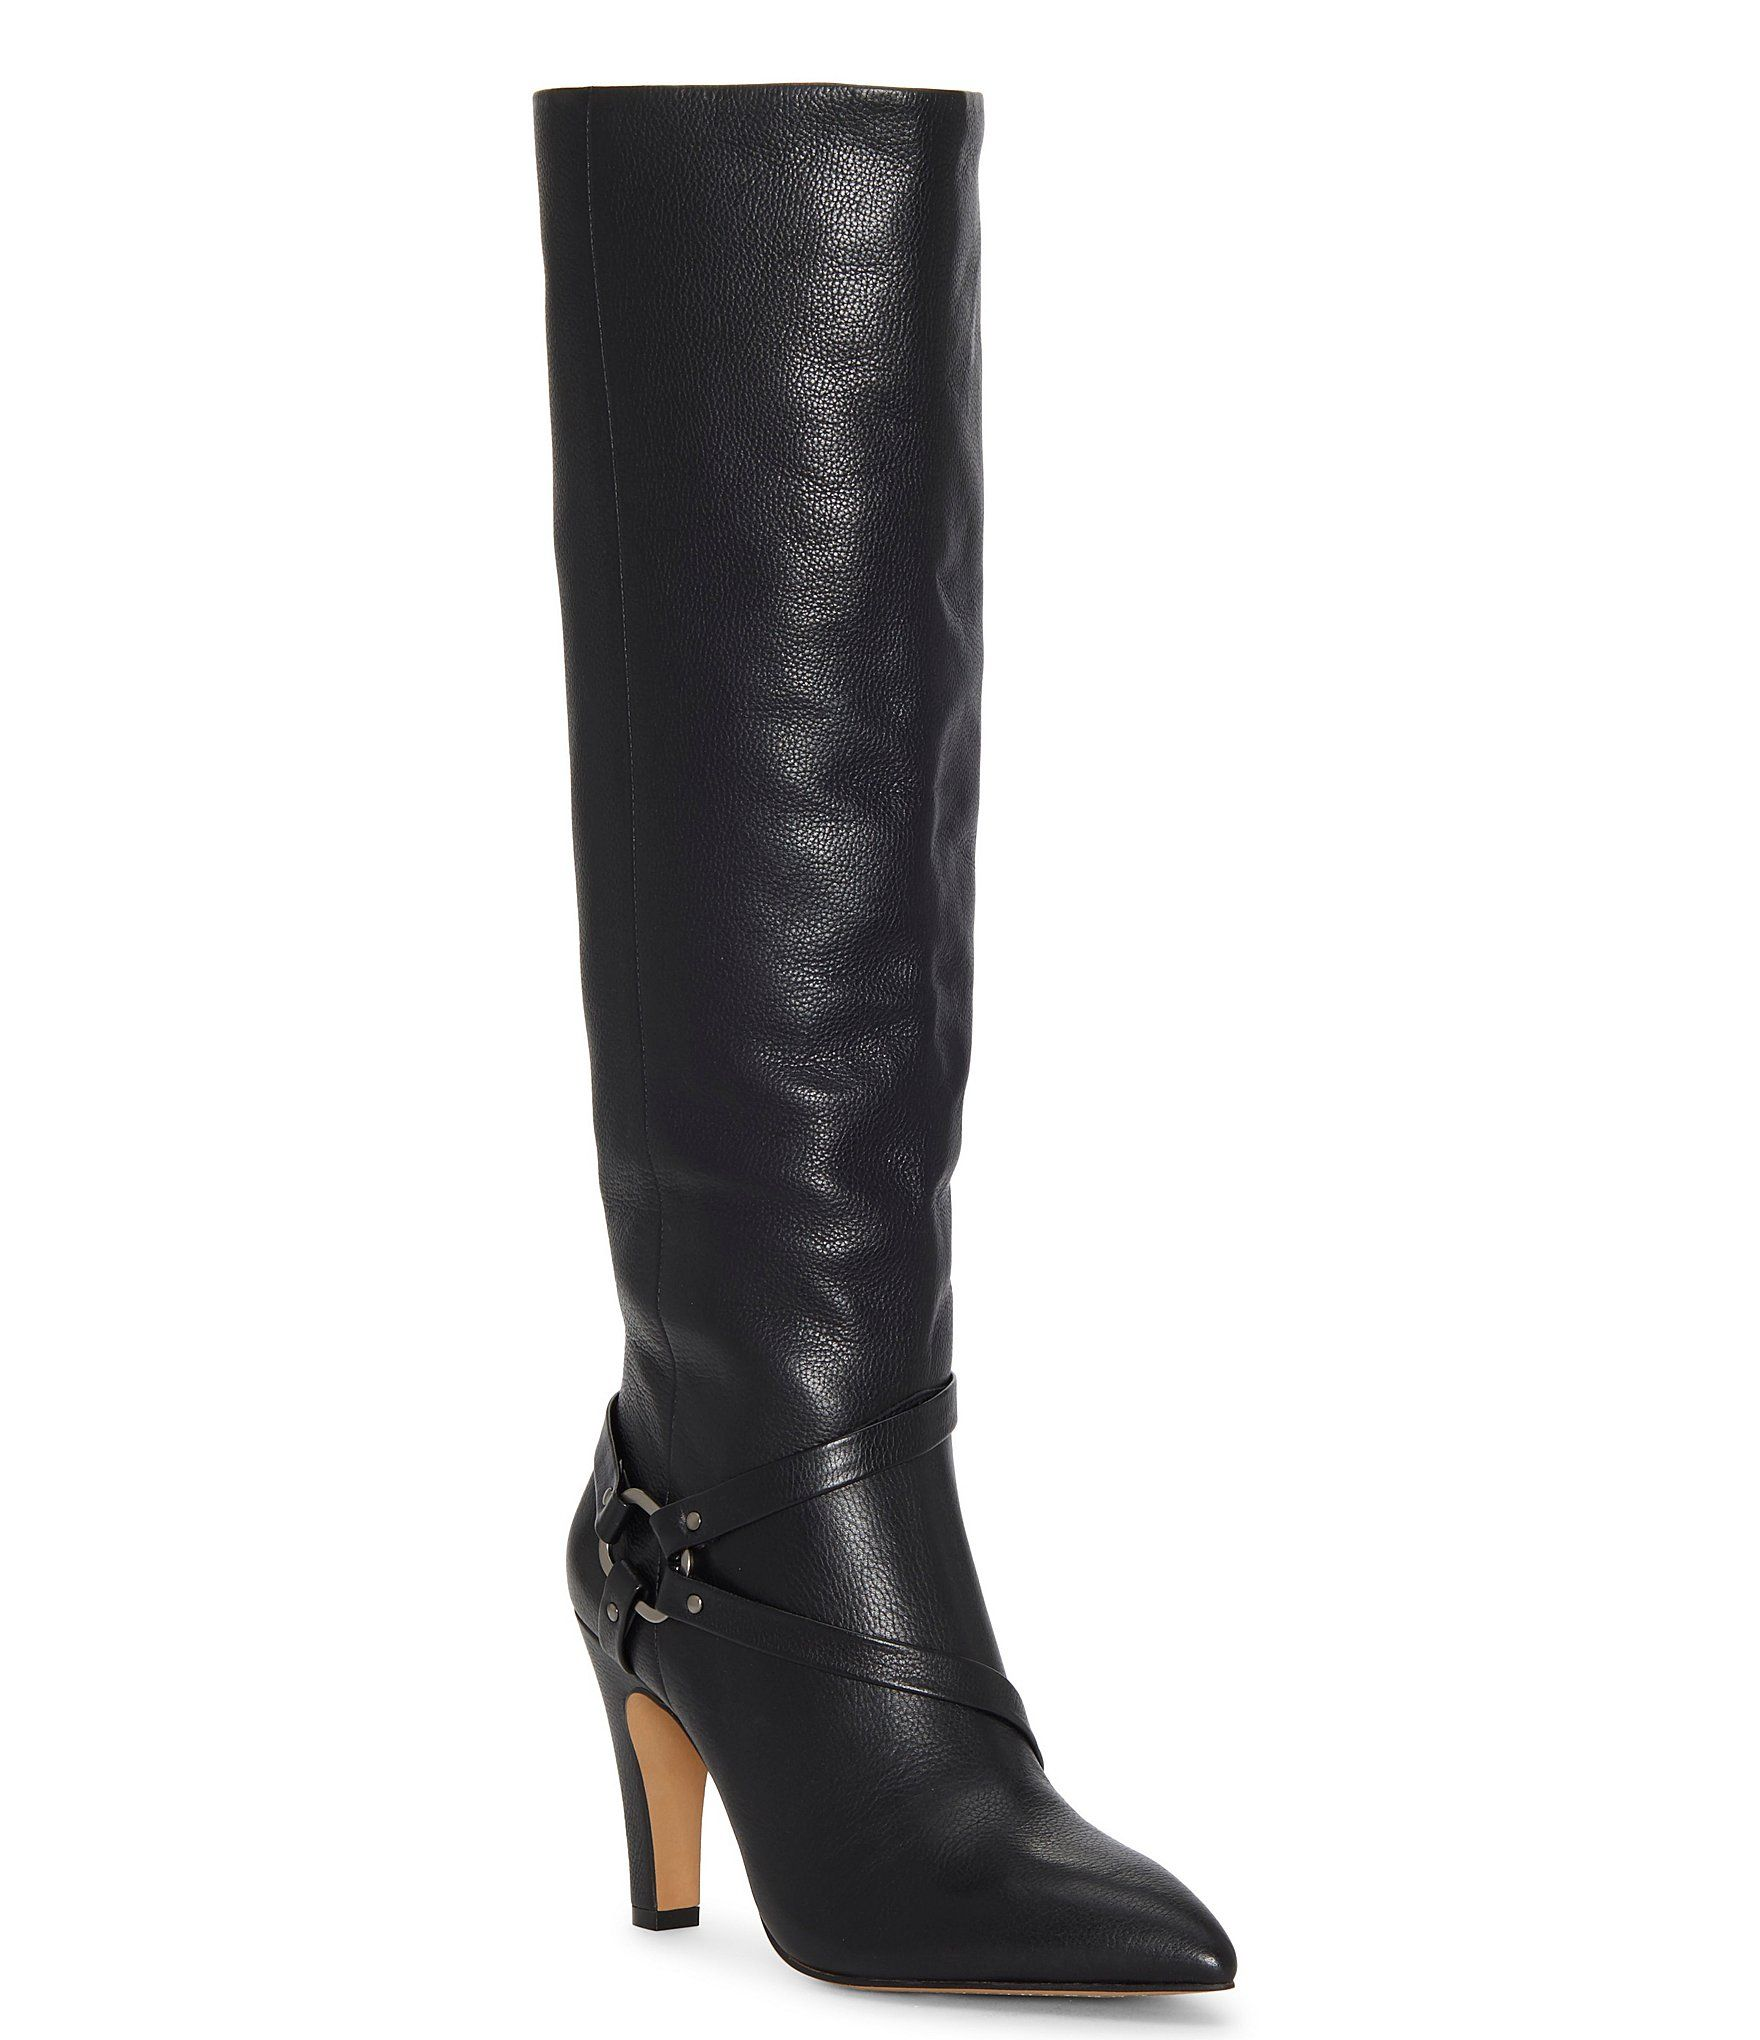 Vince Camuto Charmina2 Leather Harness Tall Stiletto Pointed Toe Dress Boots – Black 7M